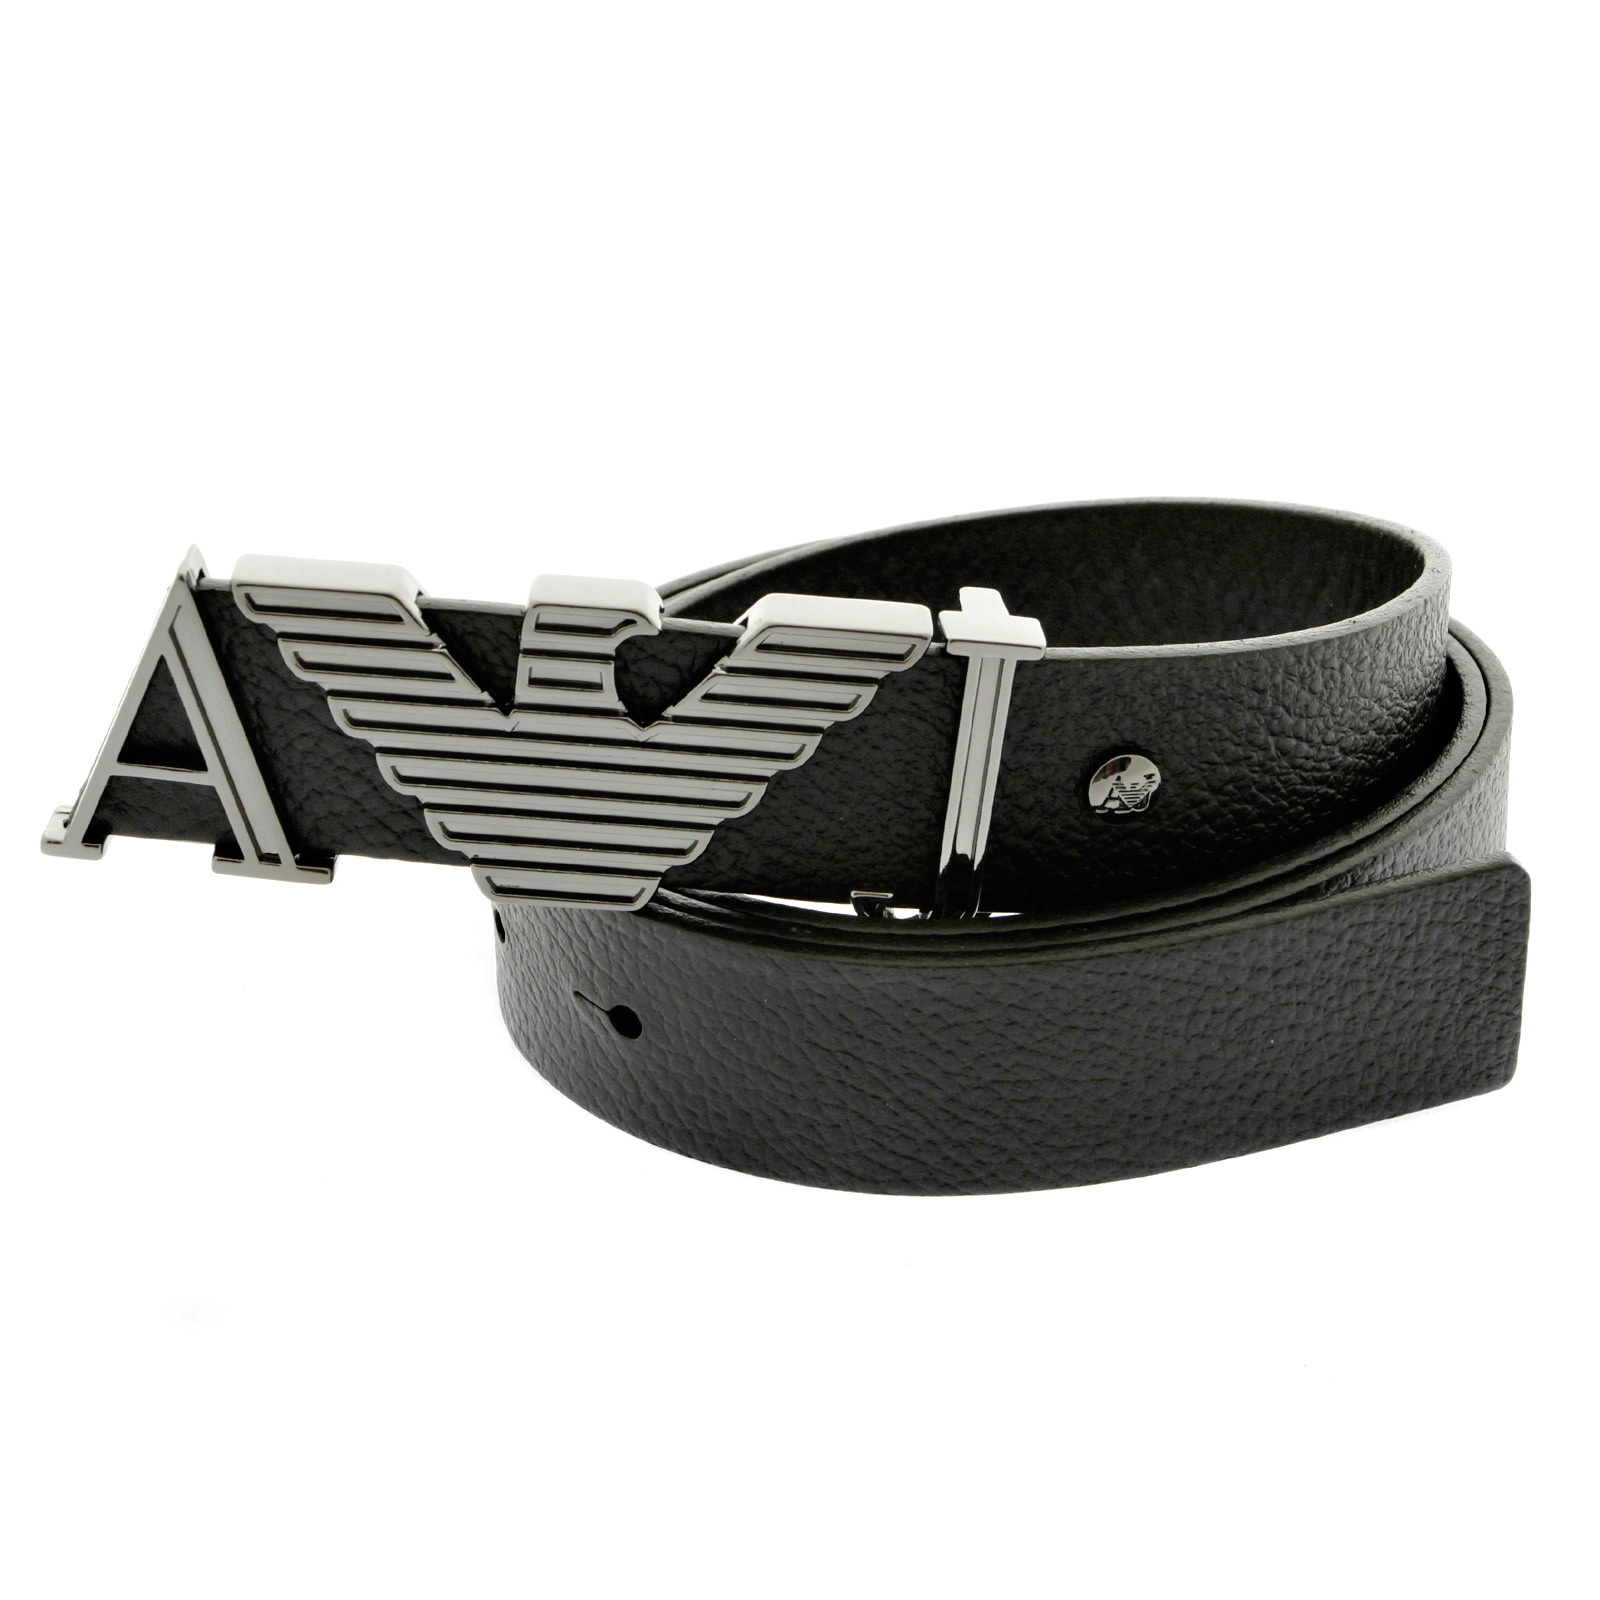 armani belt armani jeans black leather casual belt q6102 59 ajm2410 CGUOUNG